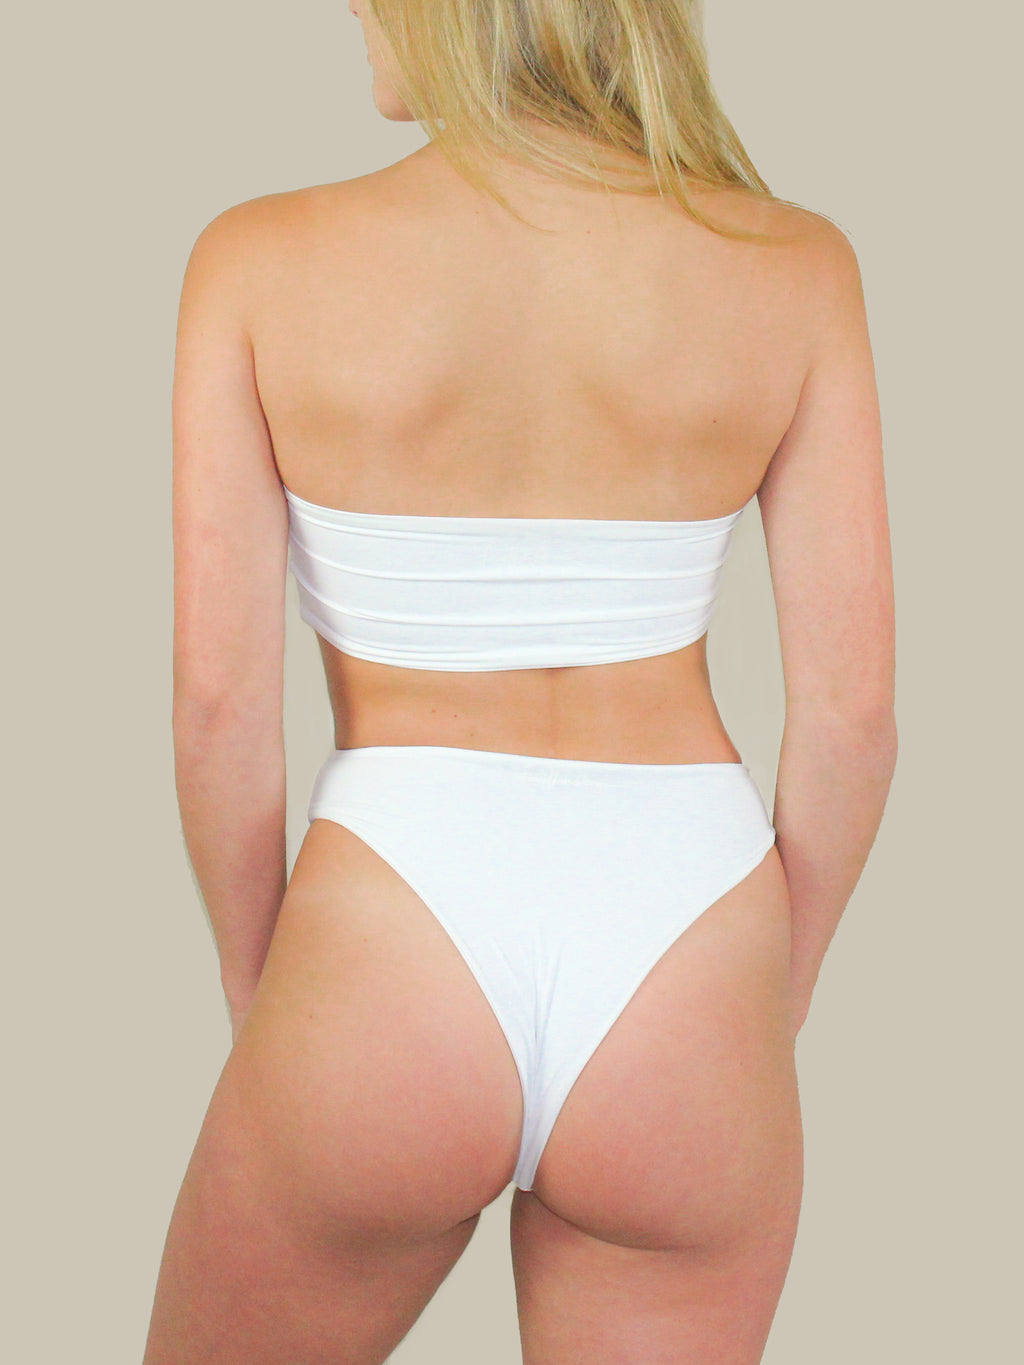 The Aubrey Bottoms in White feature a high waisted cut and have a high leg cut.